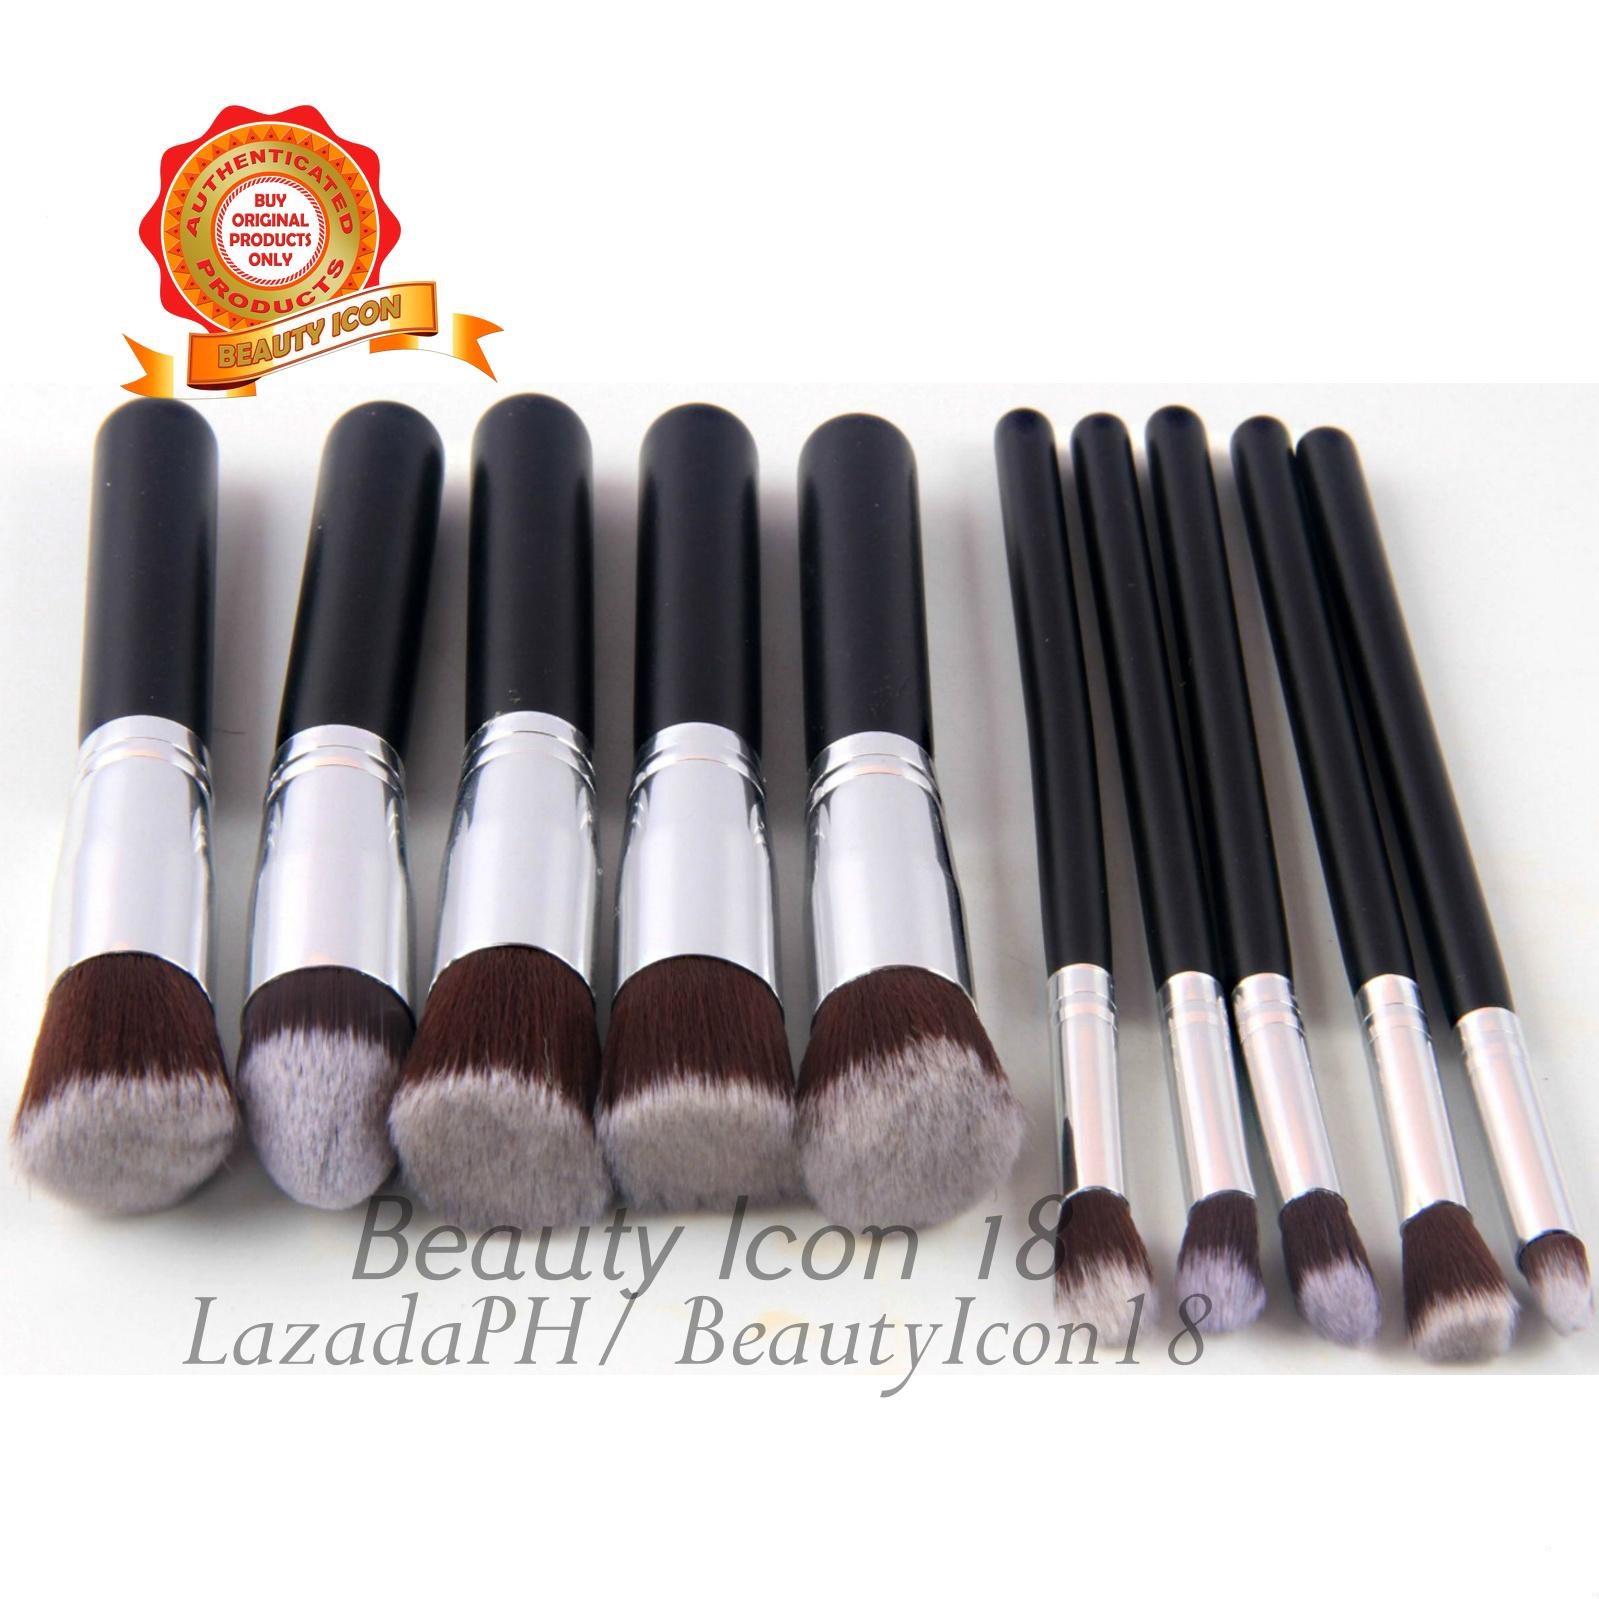 74a34422719 Makeup Brush brands - Applicator on sale, prices, set & reviews in ...